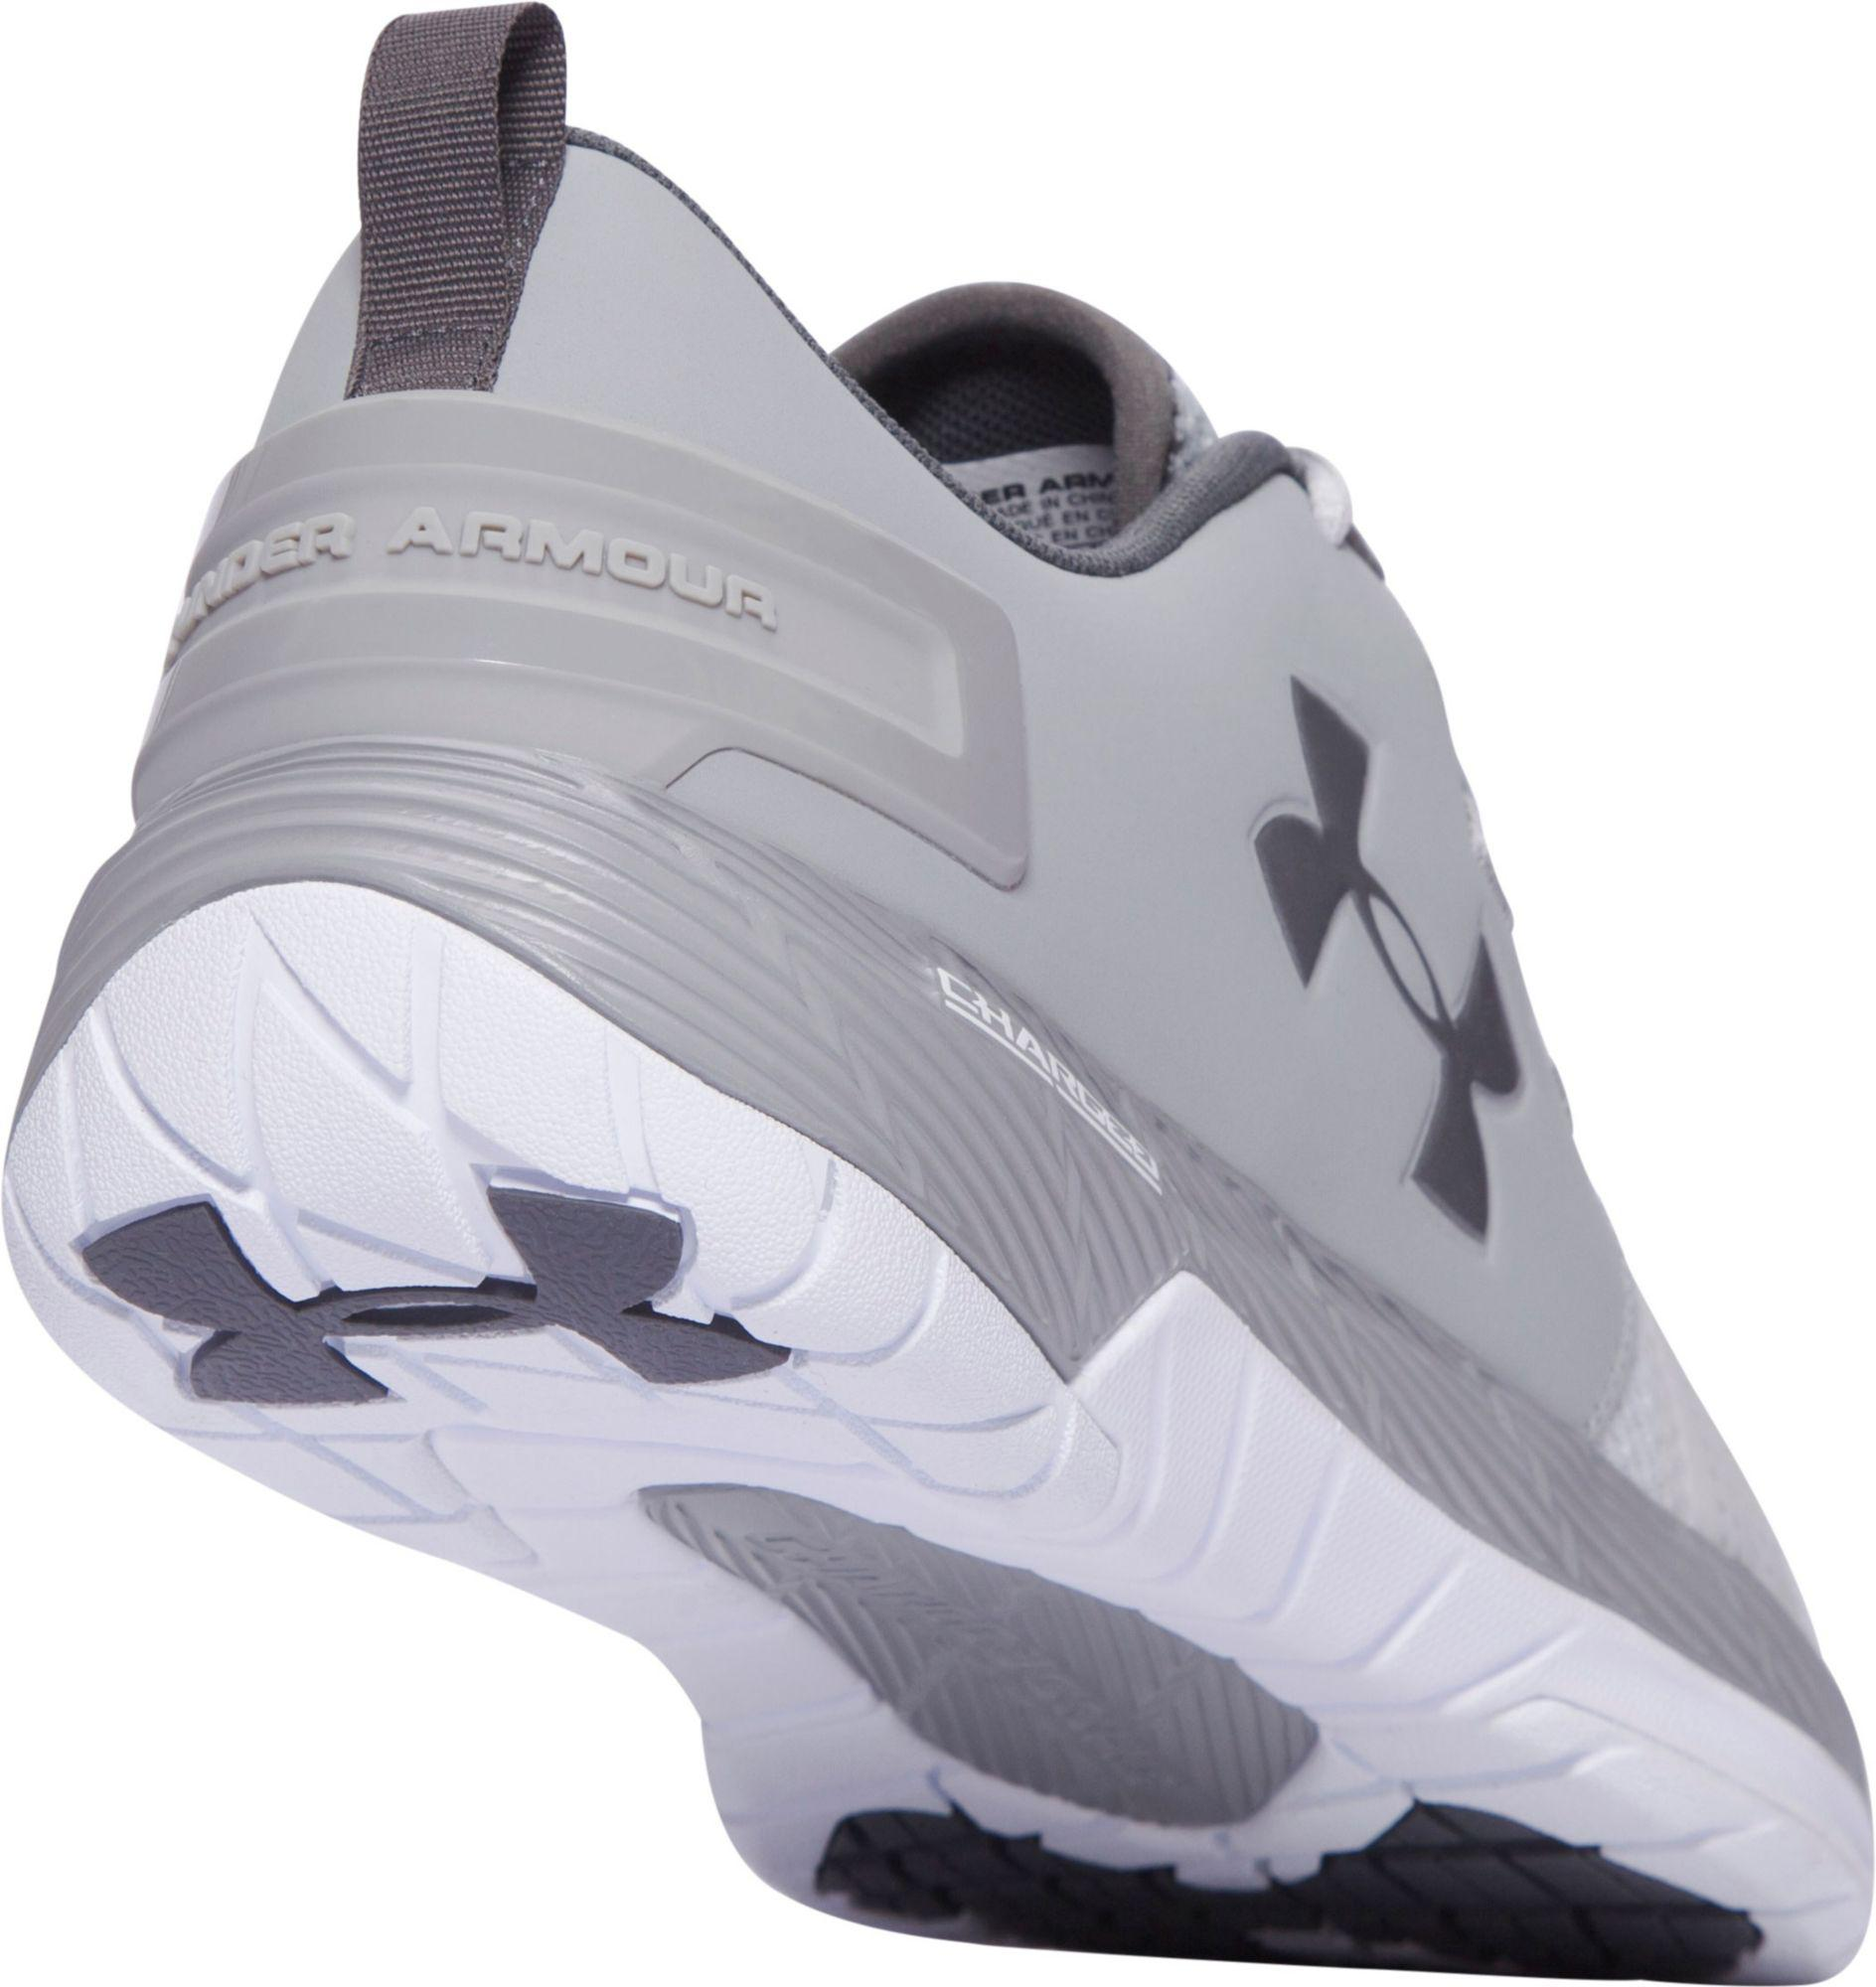 save off d78bc 9e534 Men's Gray Commit Training Shoes